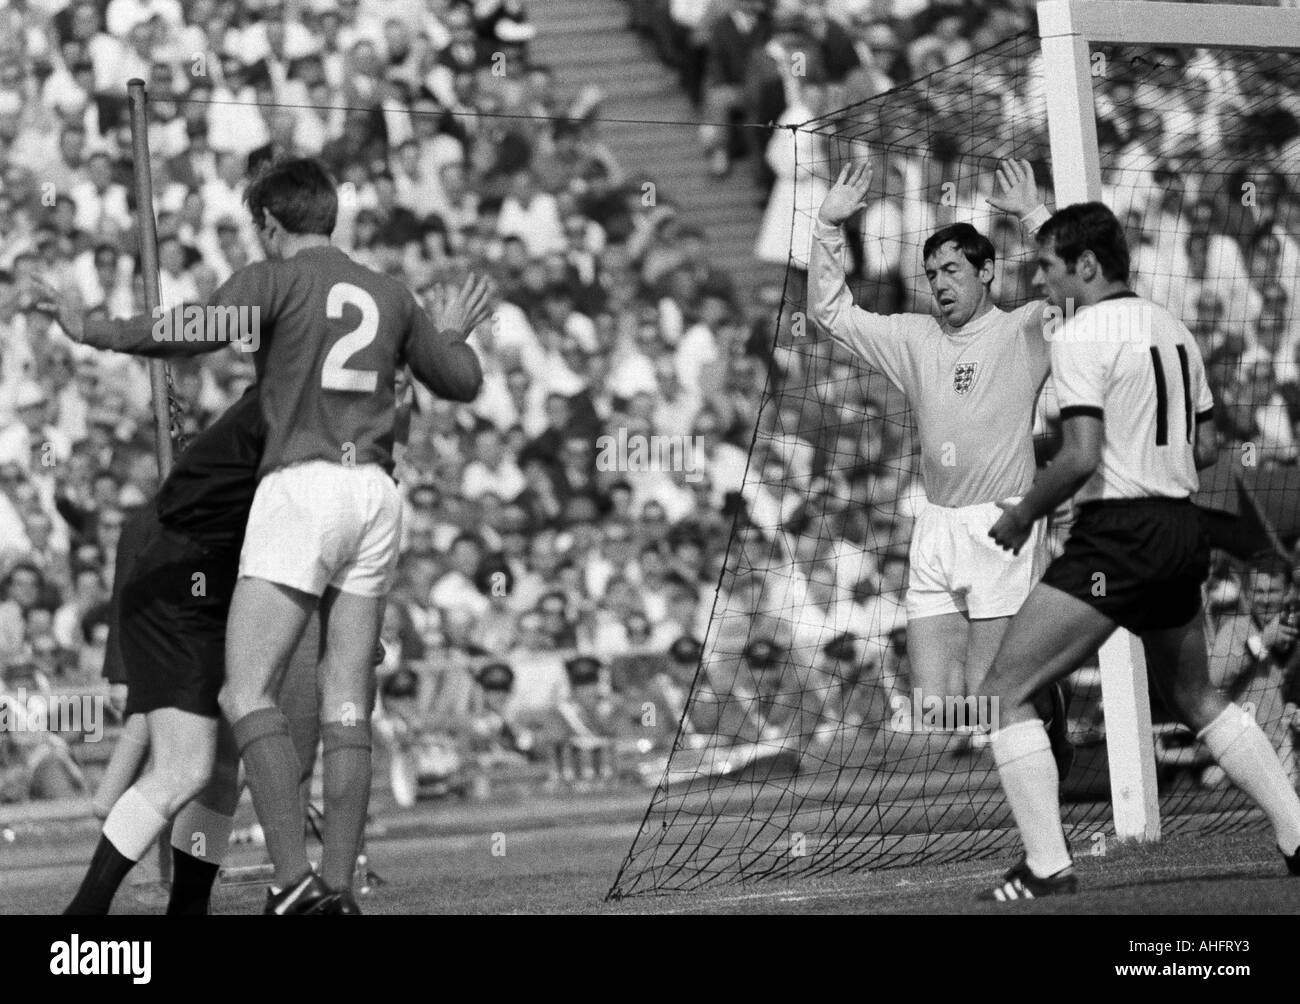 football, international match, 1968, Niedersachsen Stadium in Hanover, Germany versus England 1:0, scene of the match, f.l.t.r. Keith Newton (England, 2), keeper Gordon Banks (England), Georg Volkert (FRG) - Stock Image